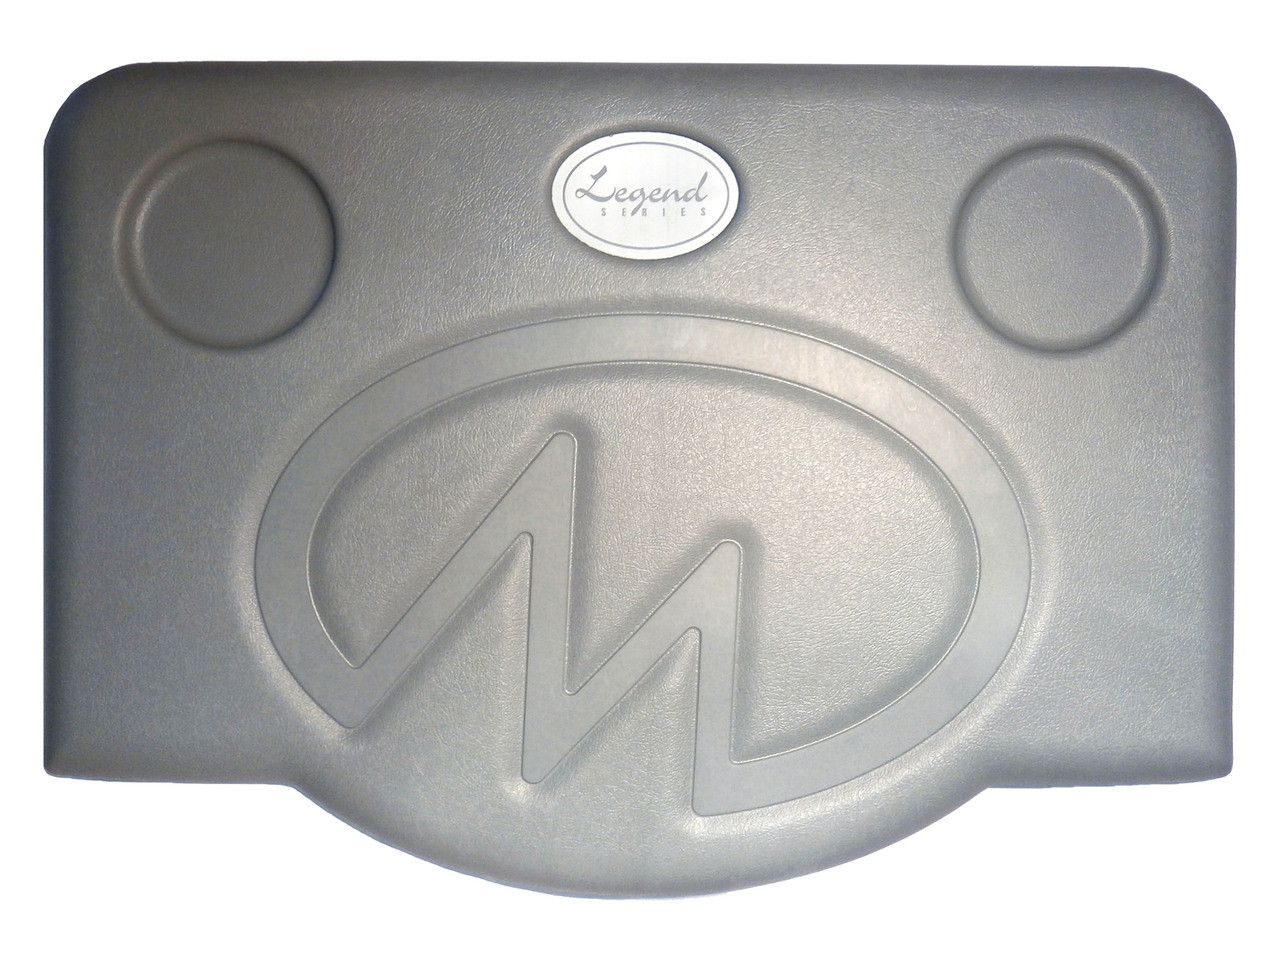 Master Spa - X540714 - Filter Lid - Legend Series Pillow Filter Lid - Front View